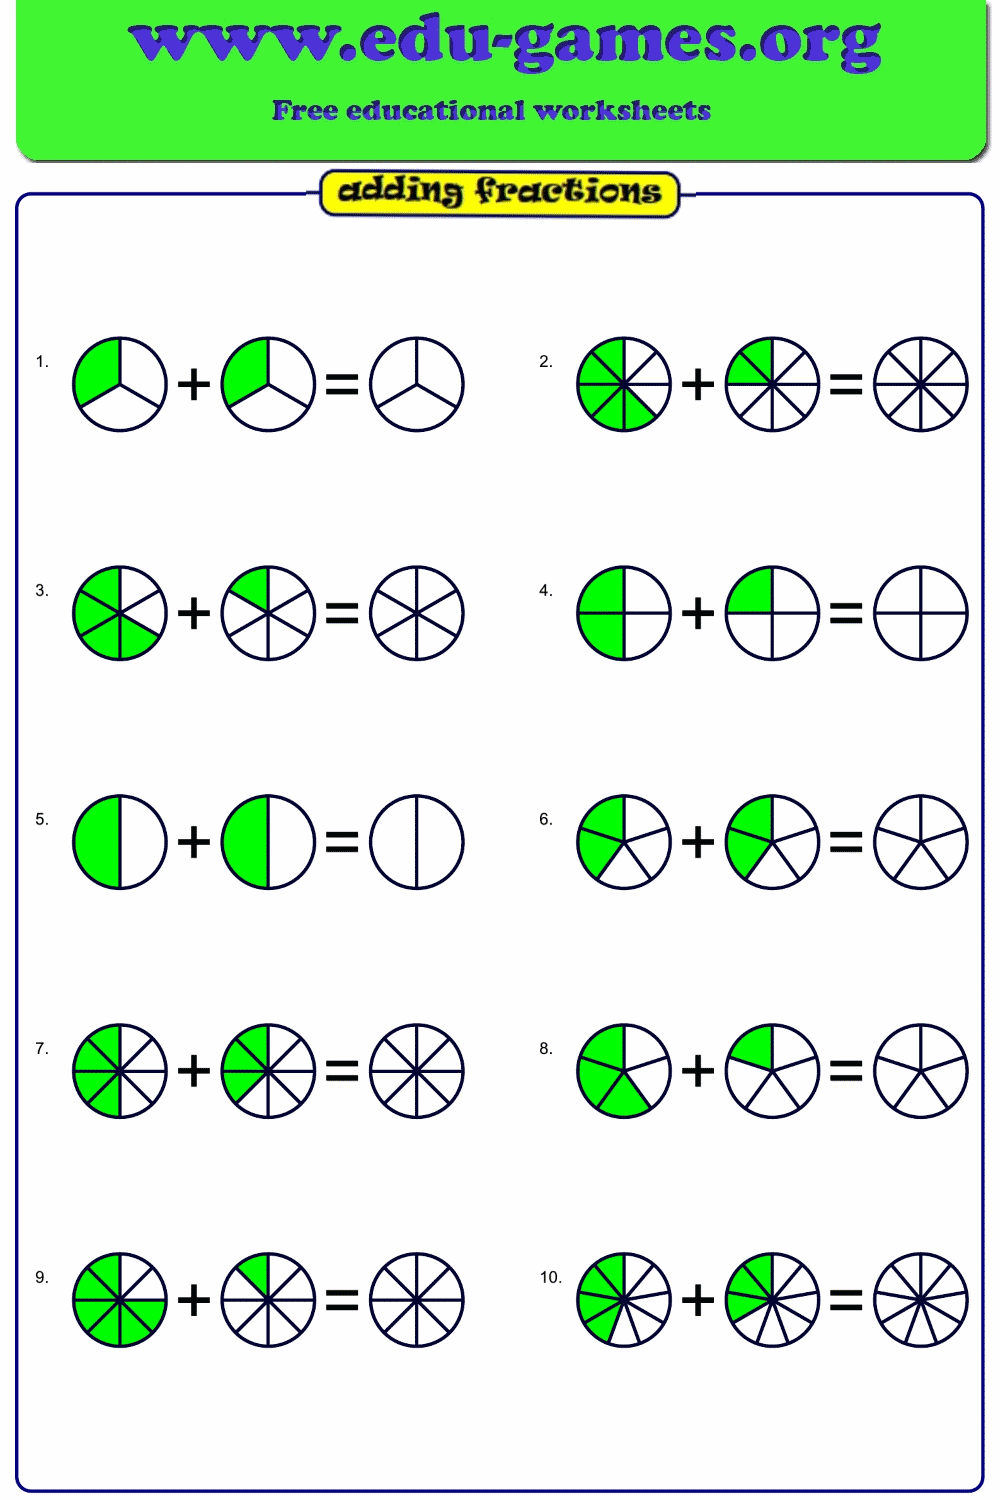 Add fraction worksheets. The fractions are displayed as